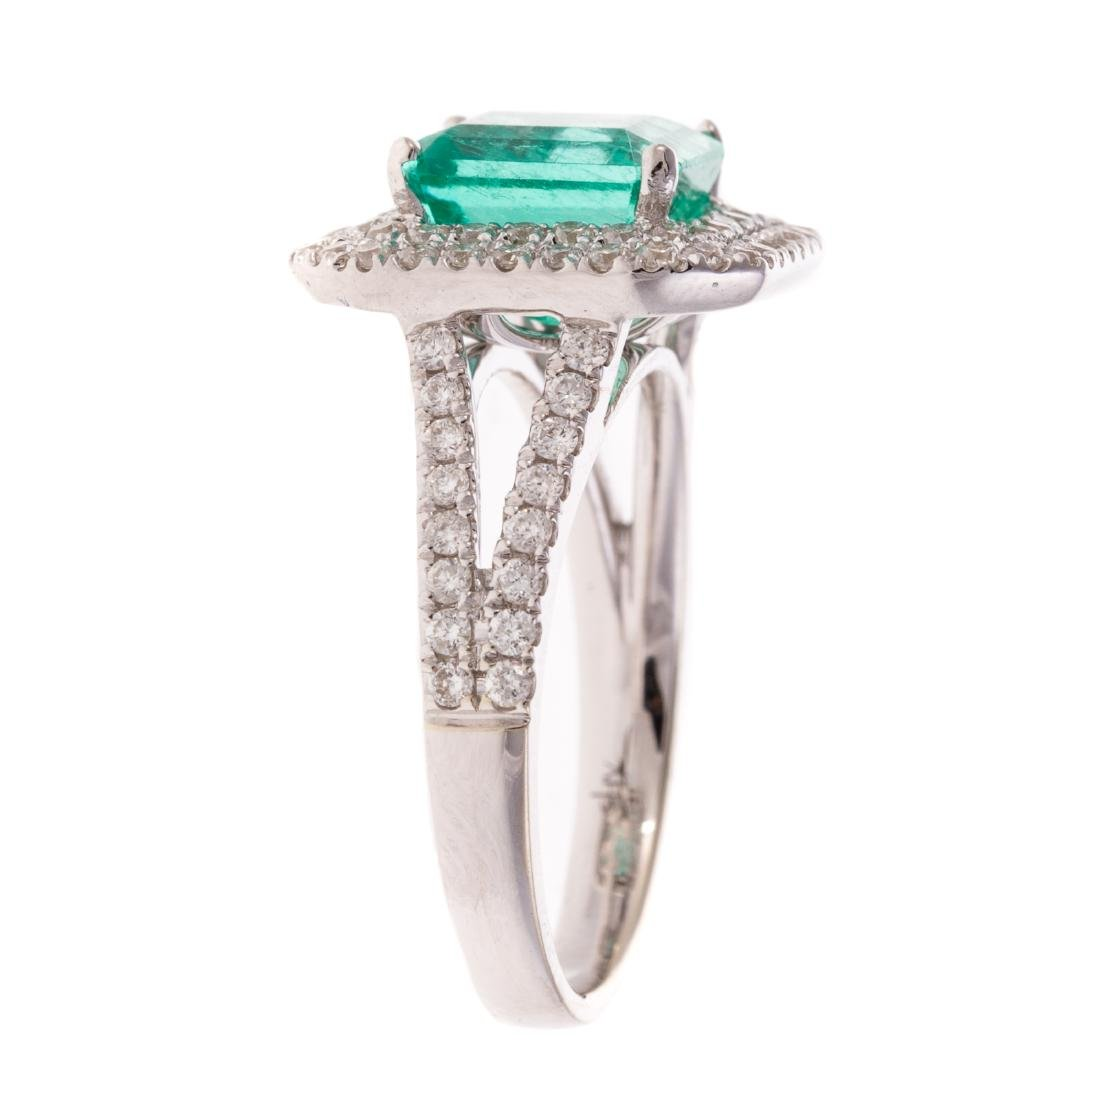 A 2.60ct Emerald & Diamond Ring in Gold - 3